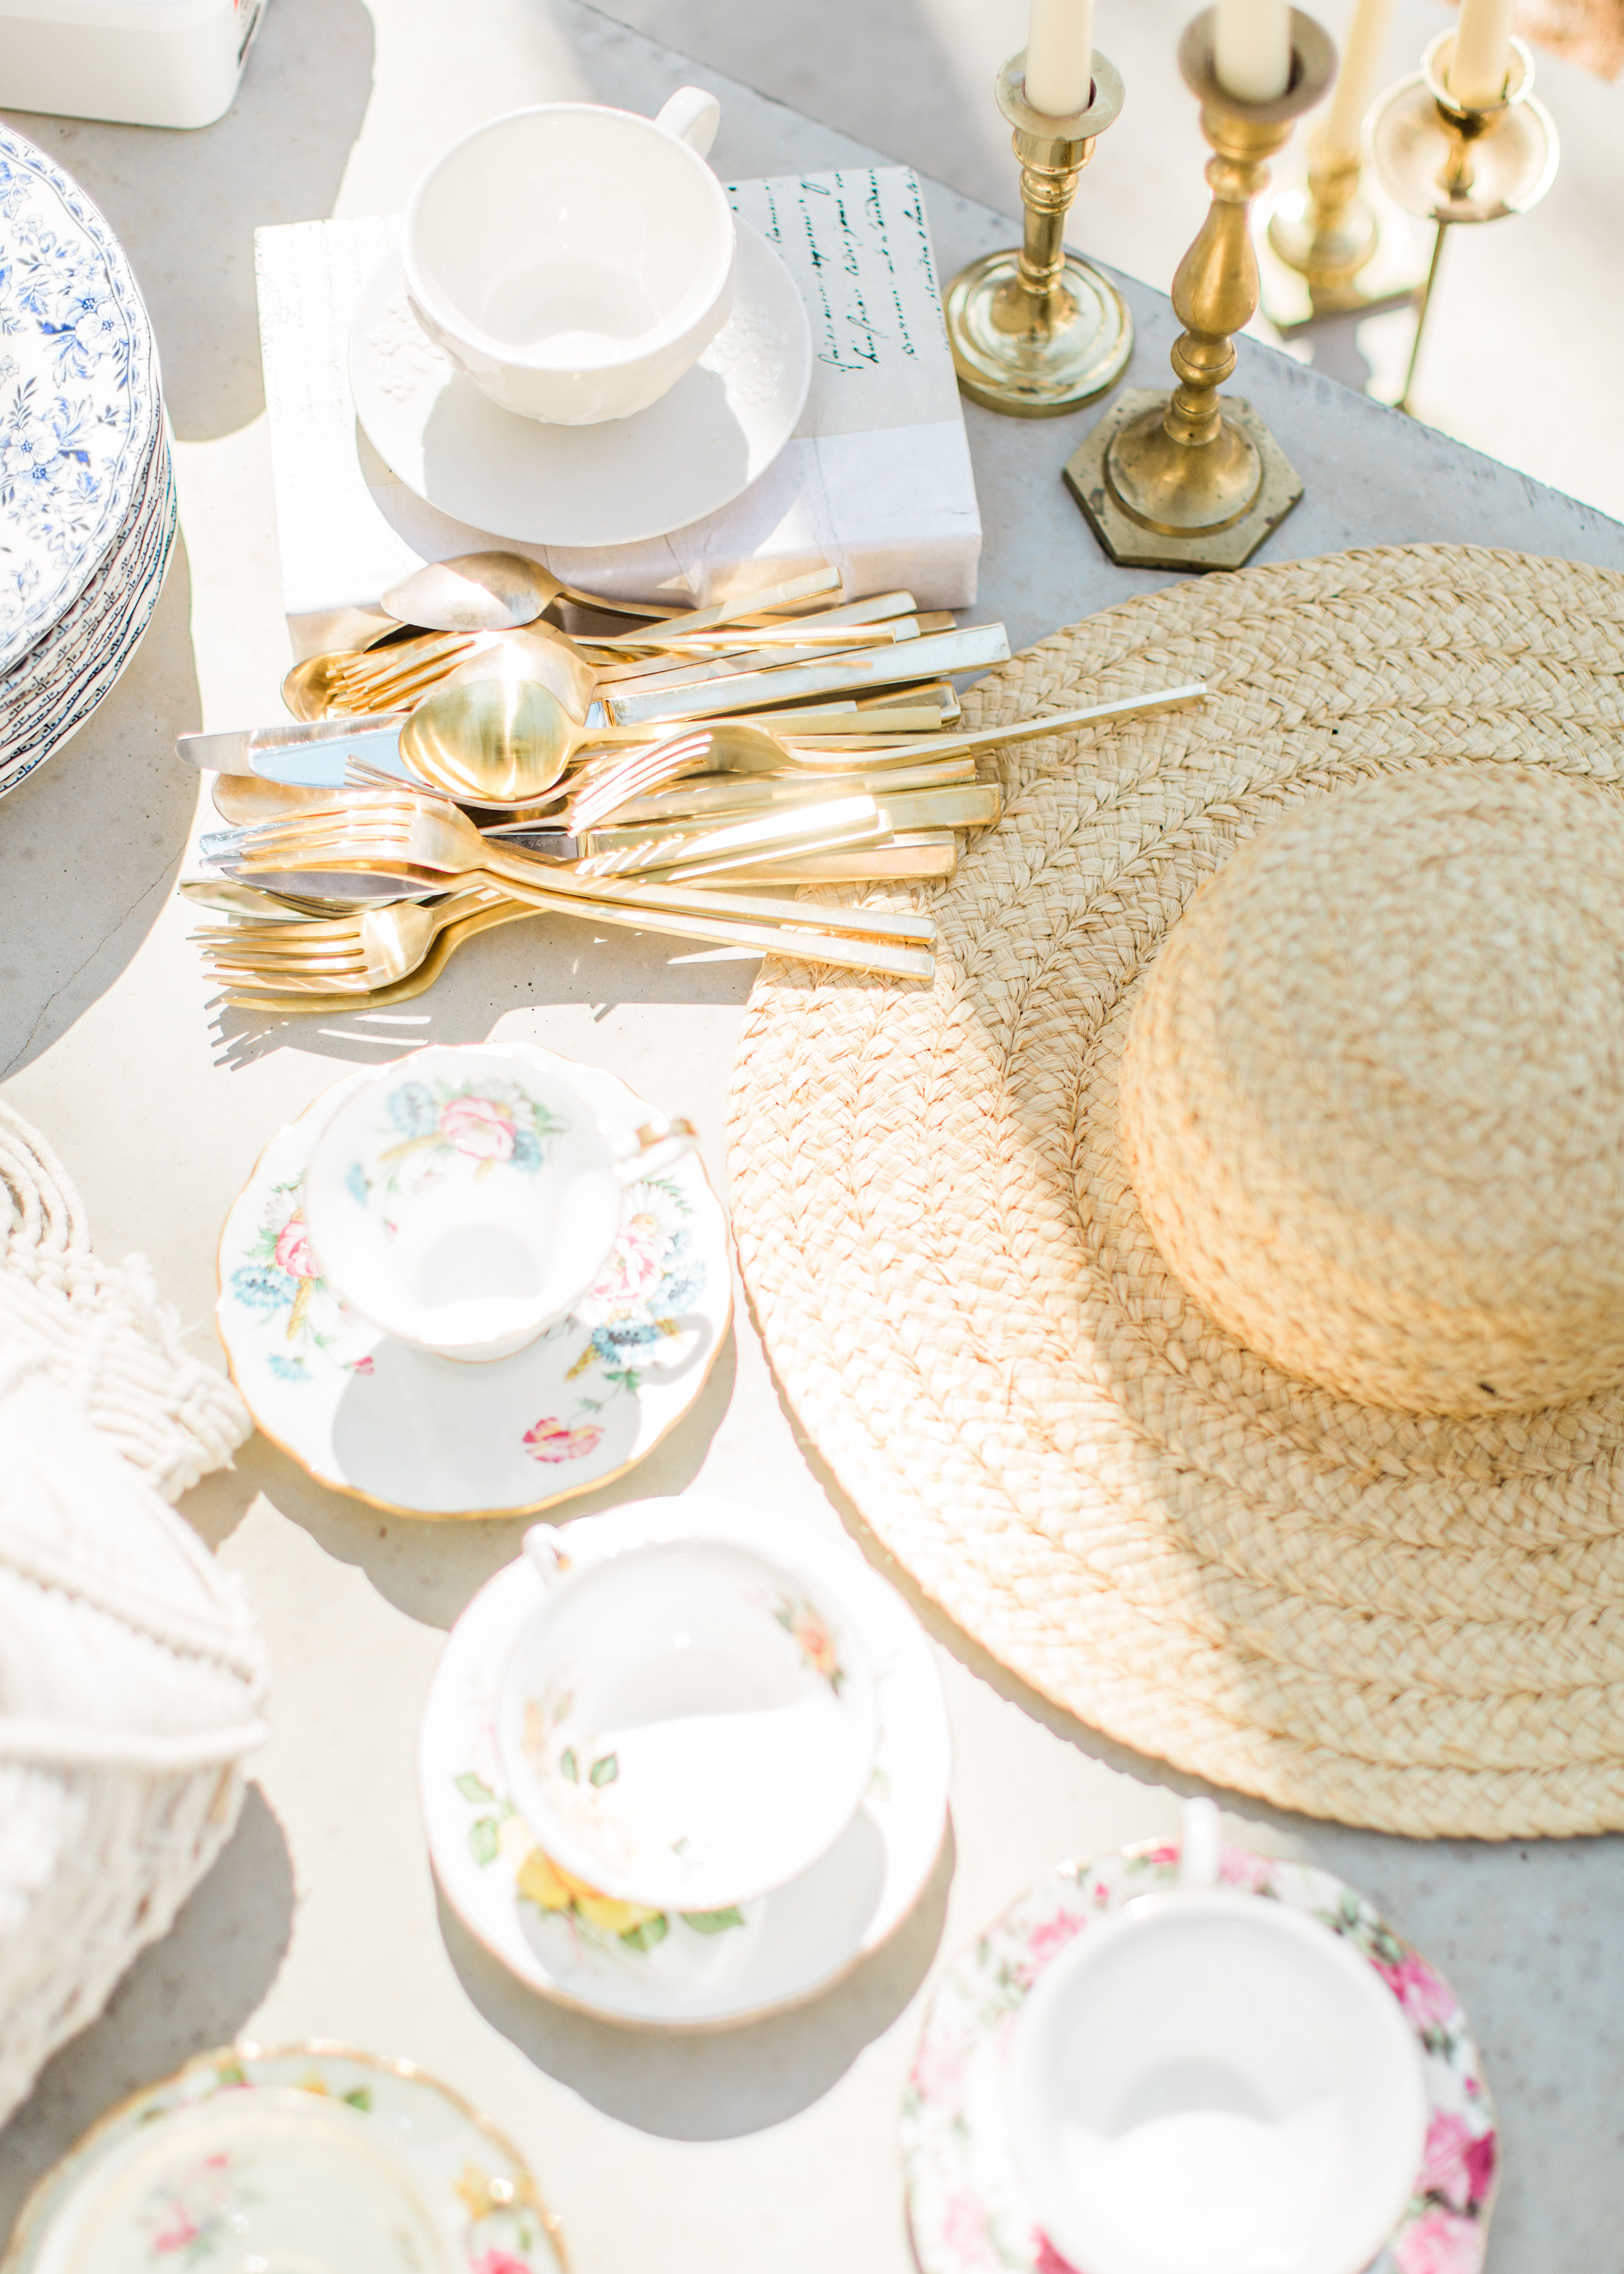 a whimsical outdoor spring tea and dessert party.